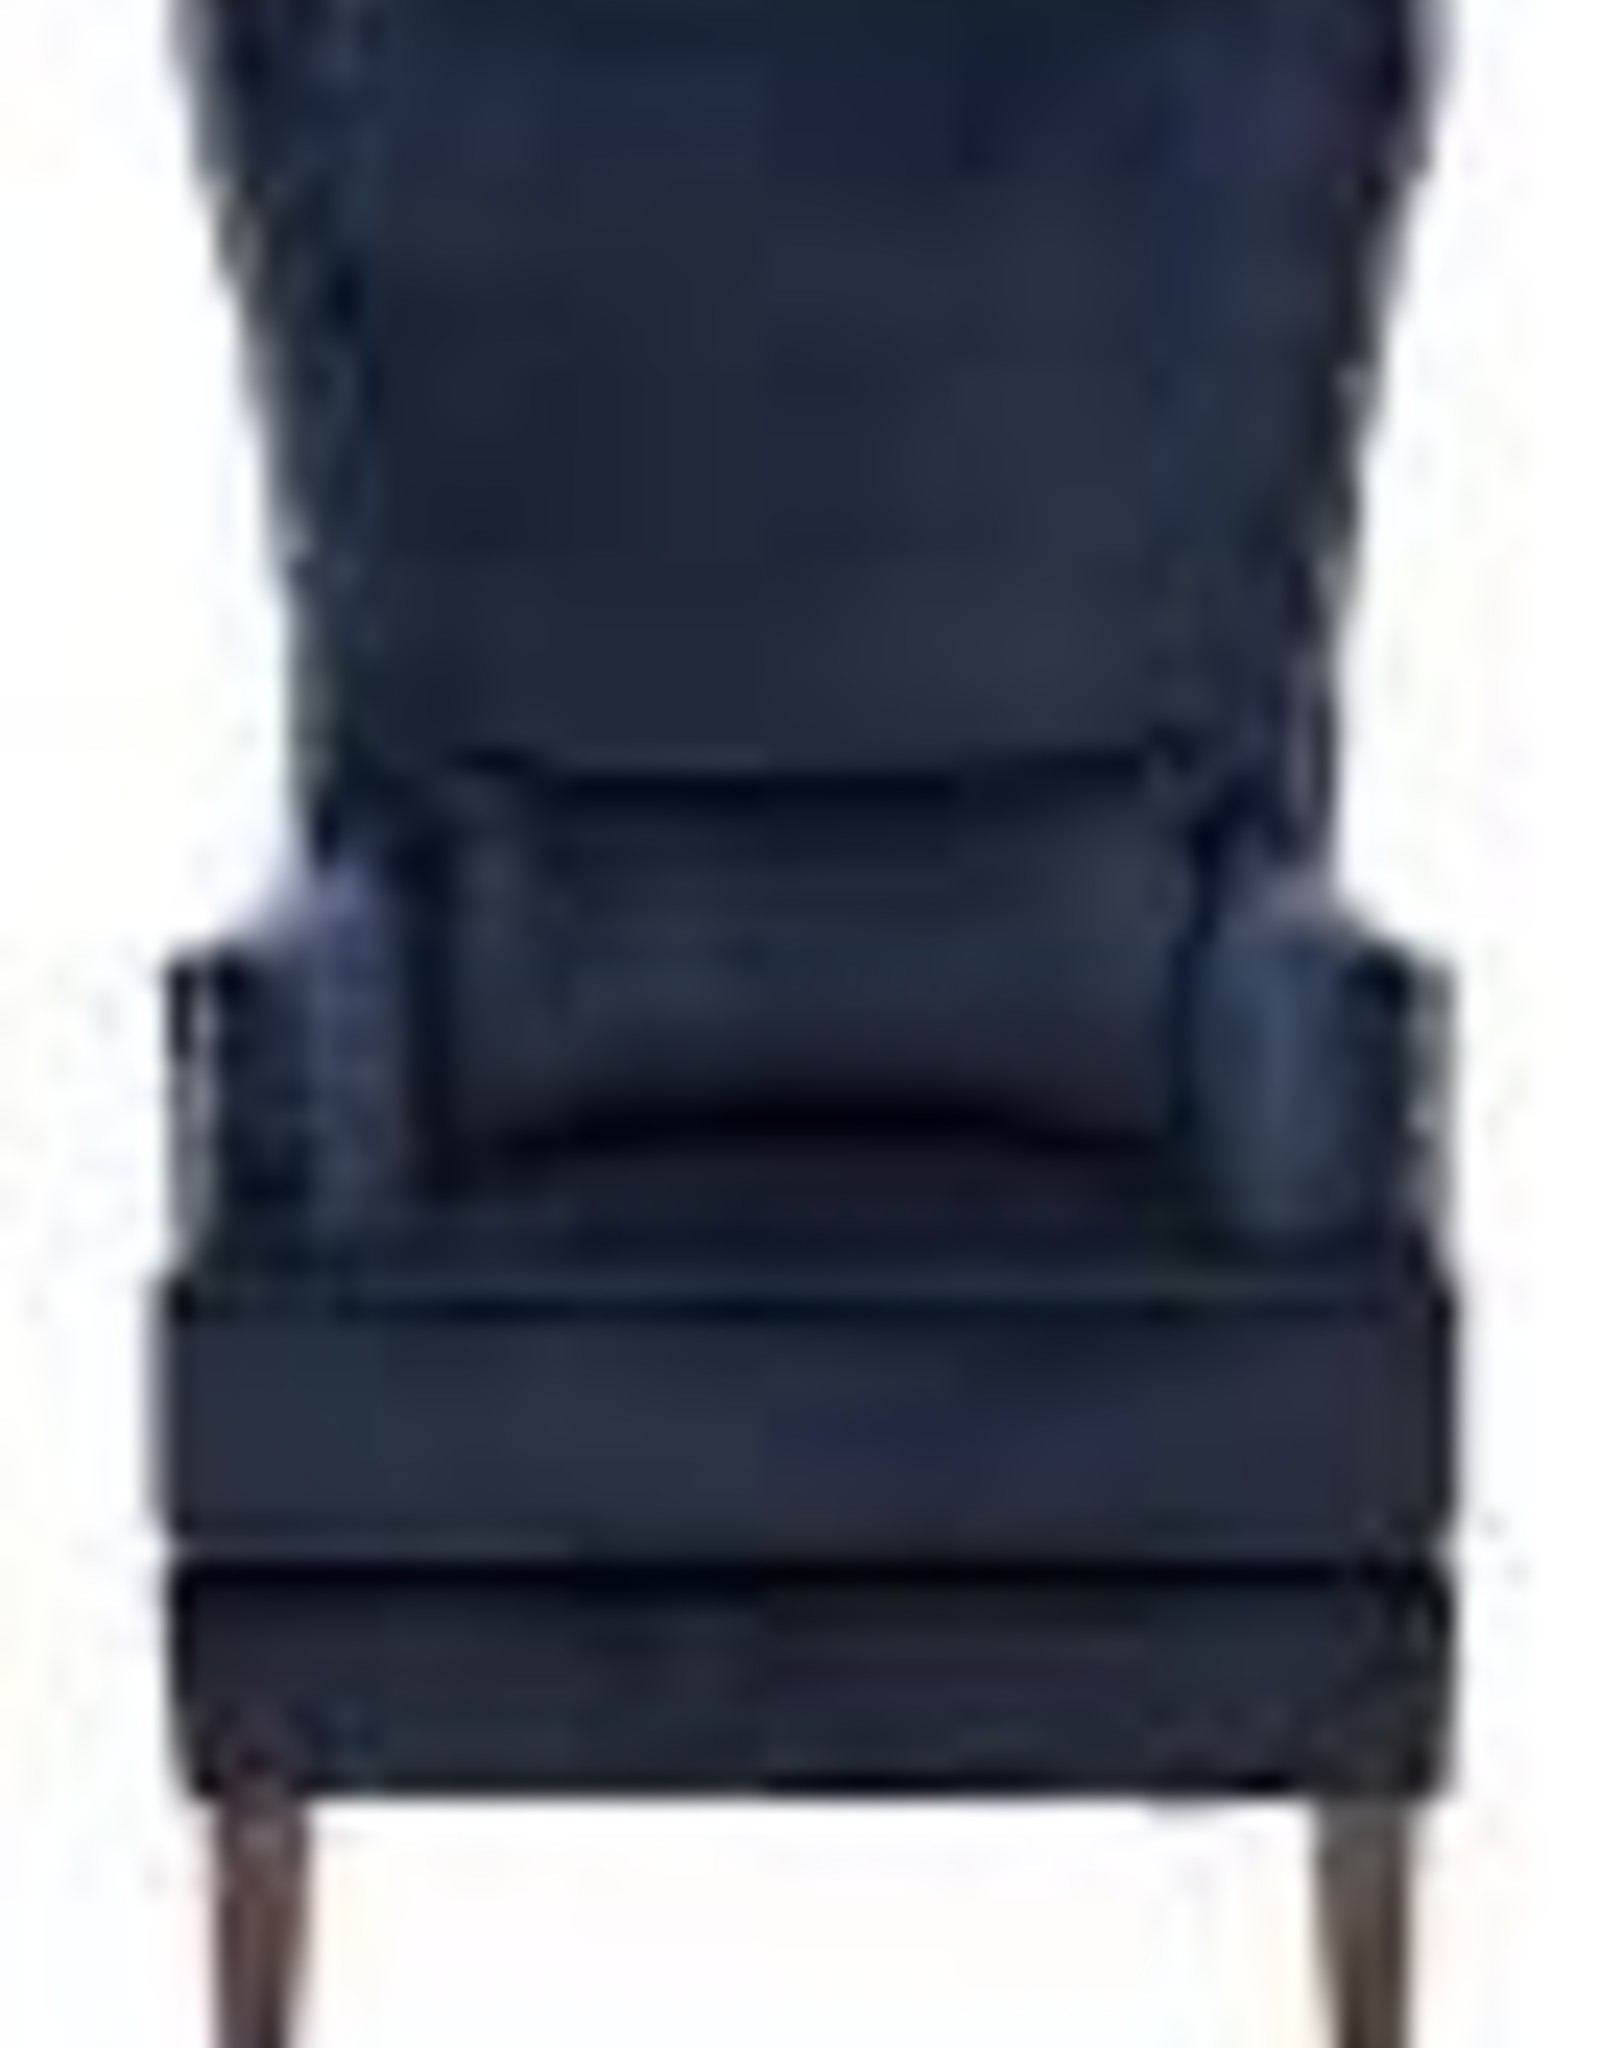 CLS Kori Heirloom Charcoal Chair